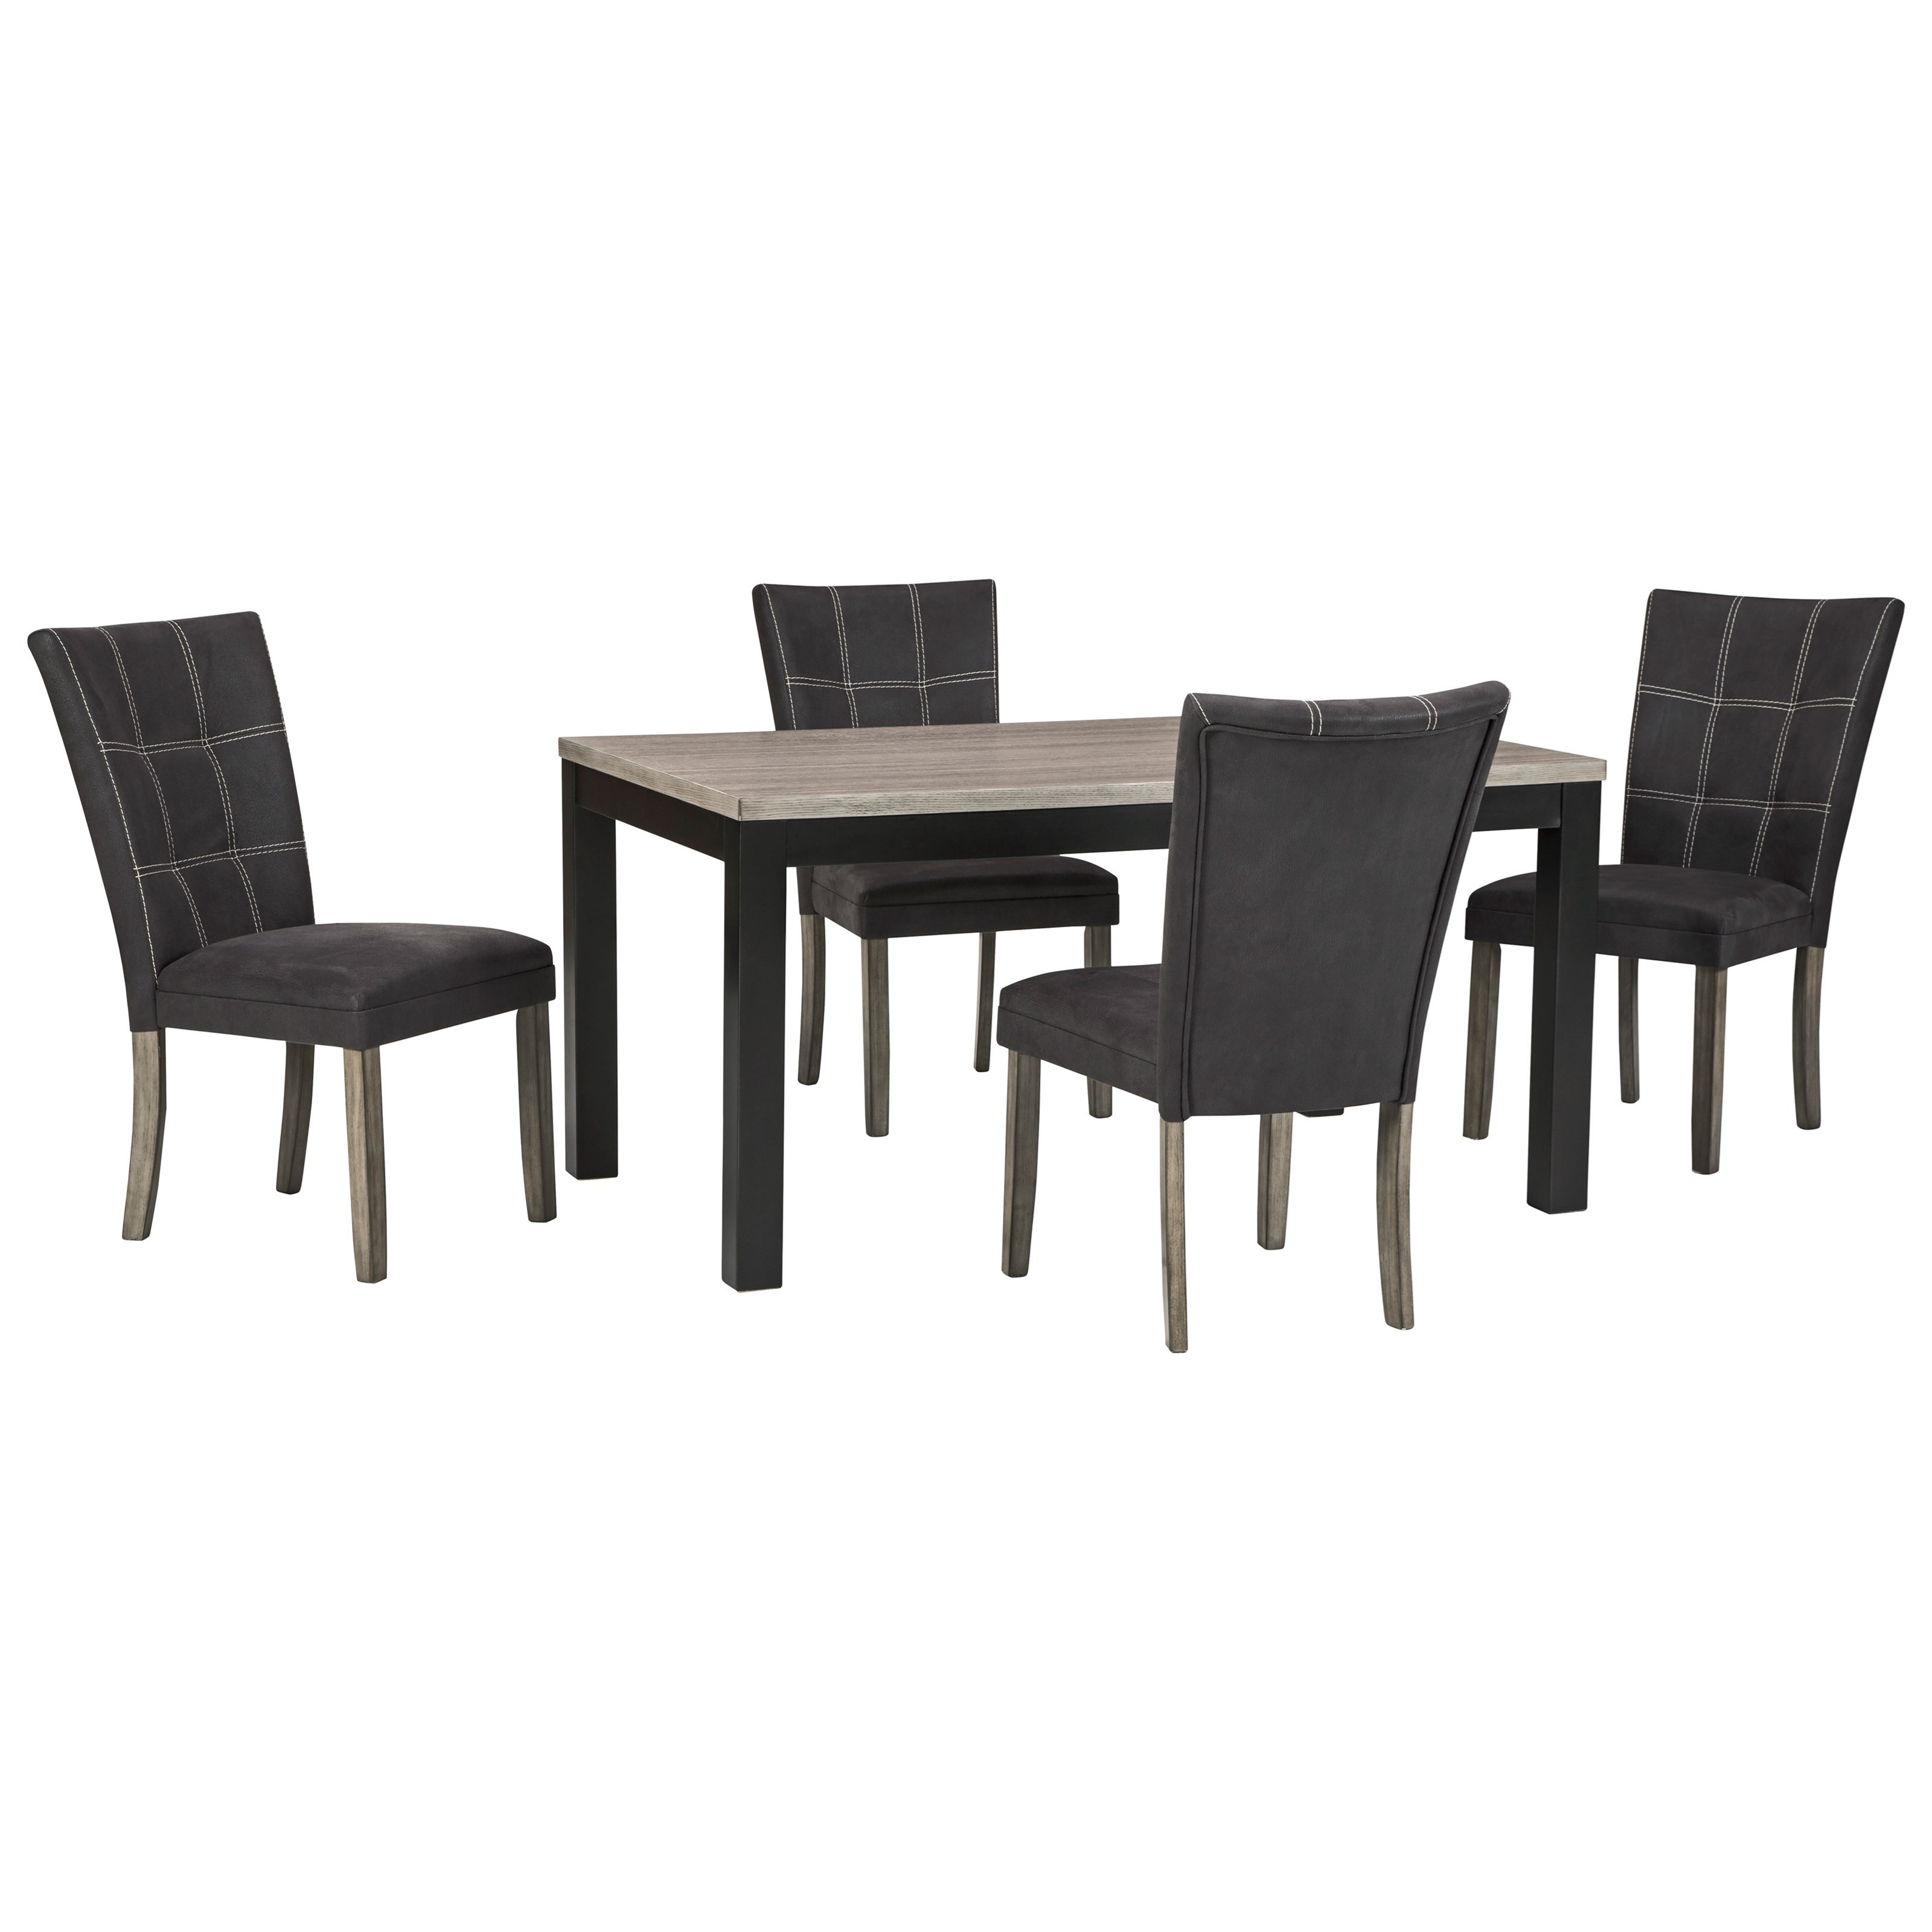 Tufted Chaise Lounge Chair, Benchcraft Dontally 5 Piece Rectangular Dining Table Set Dunk Bright Furniture Dining 5 Piece Sets